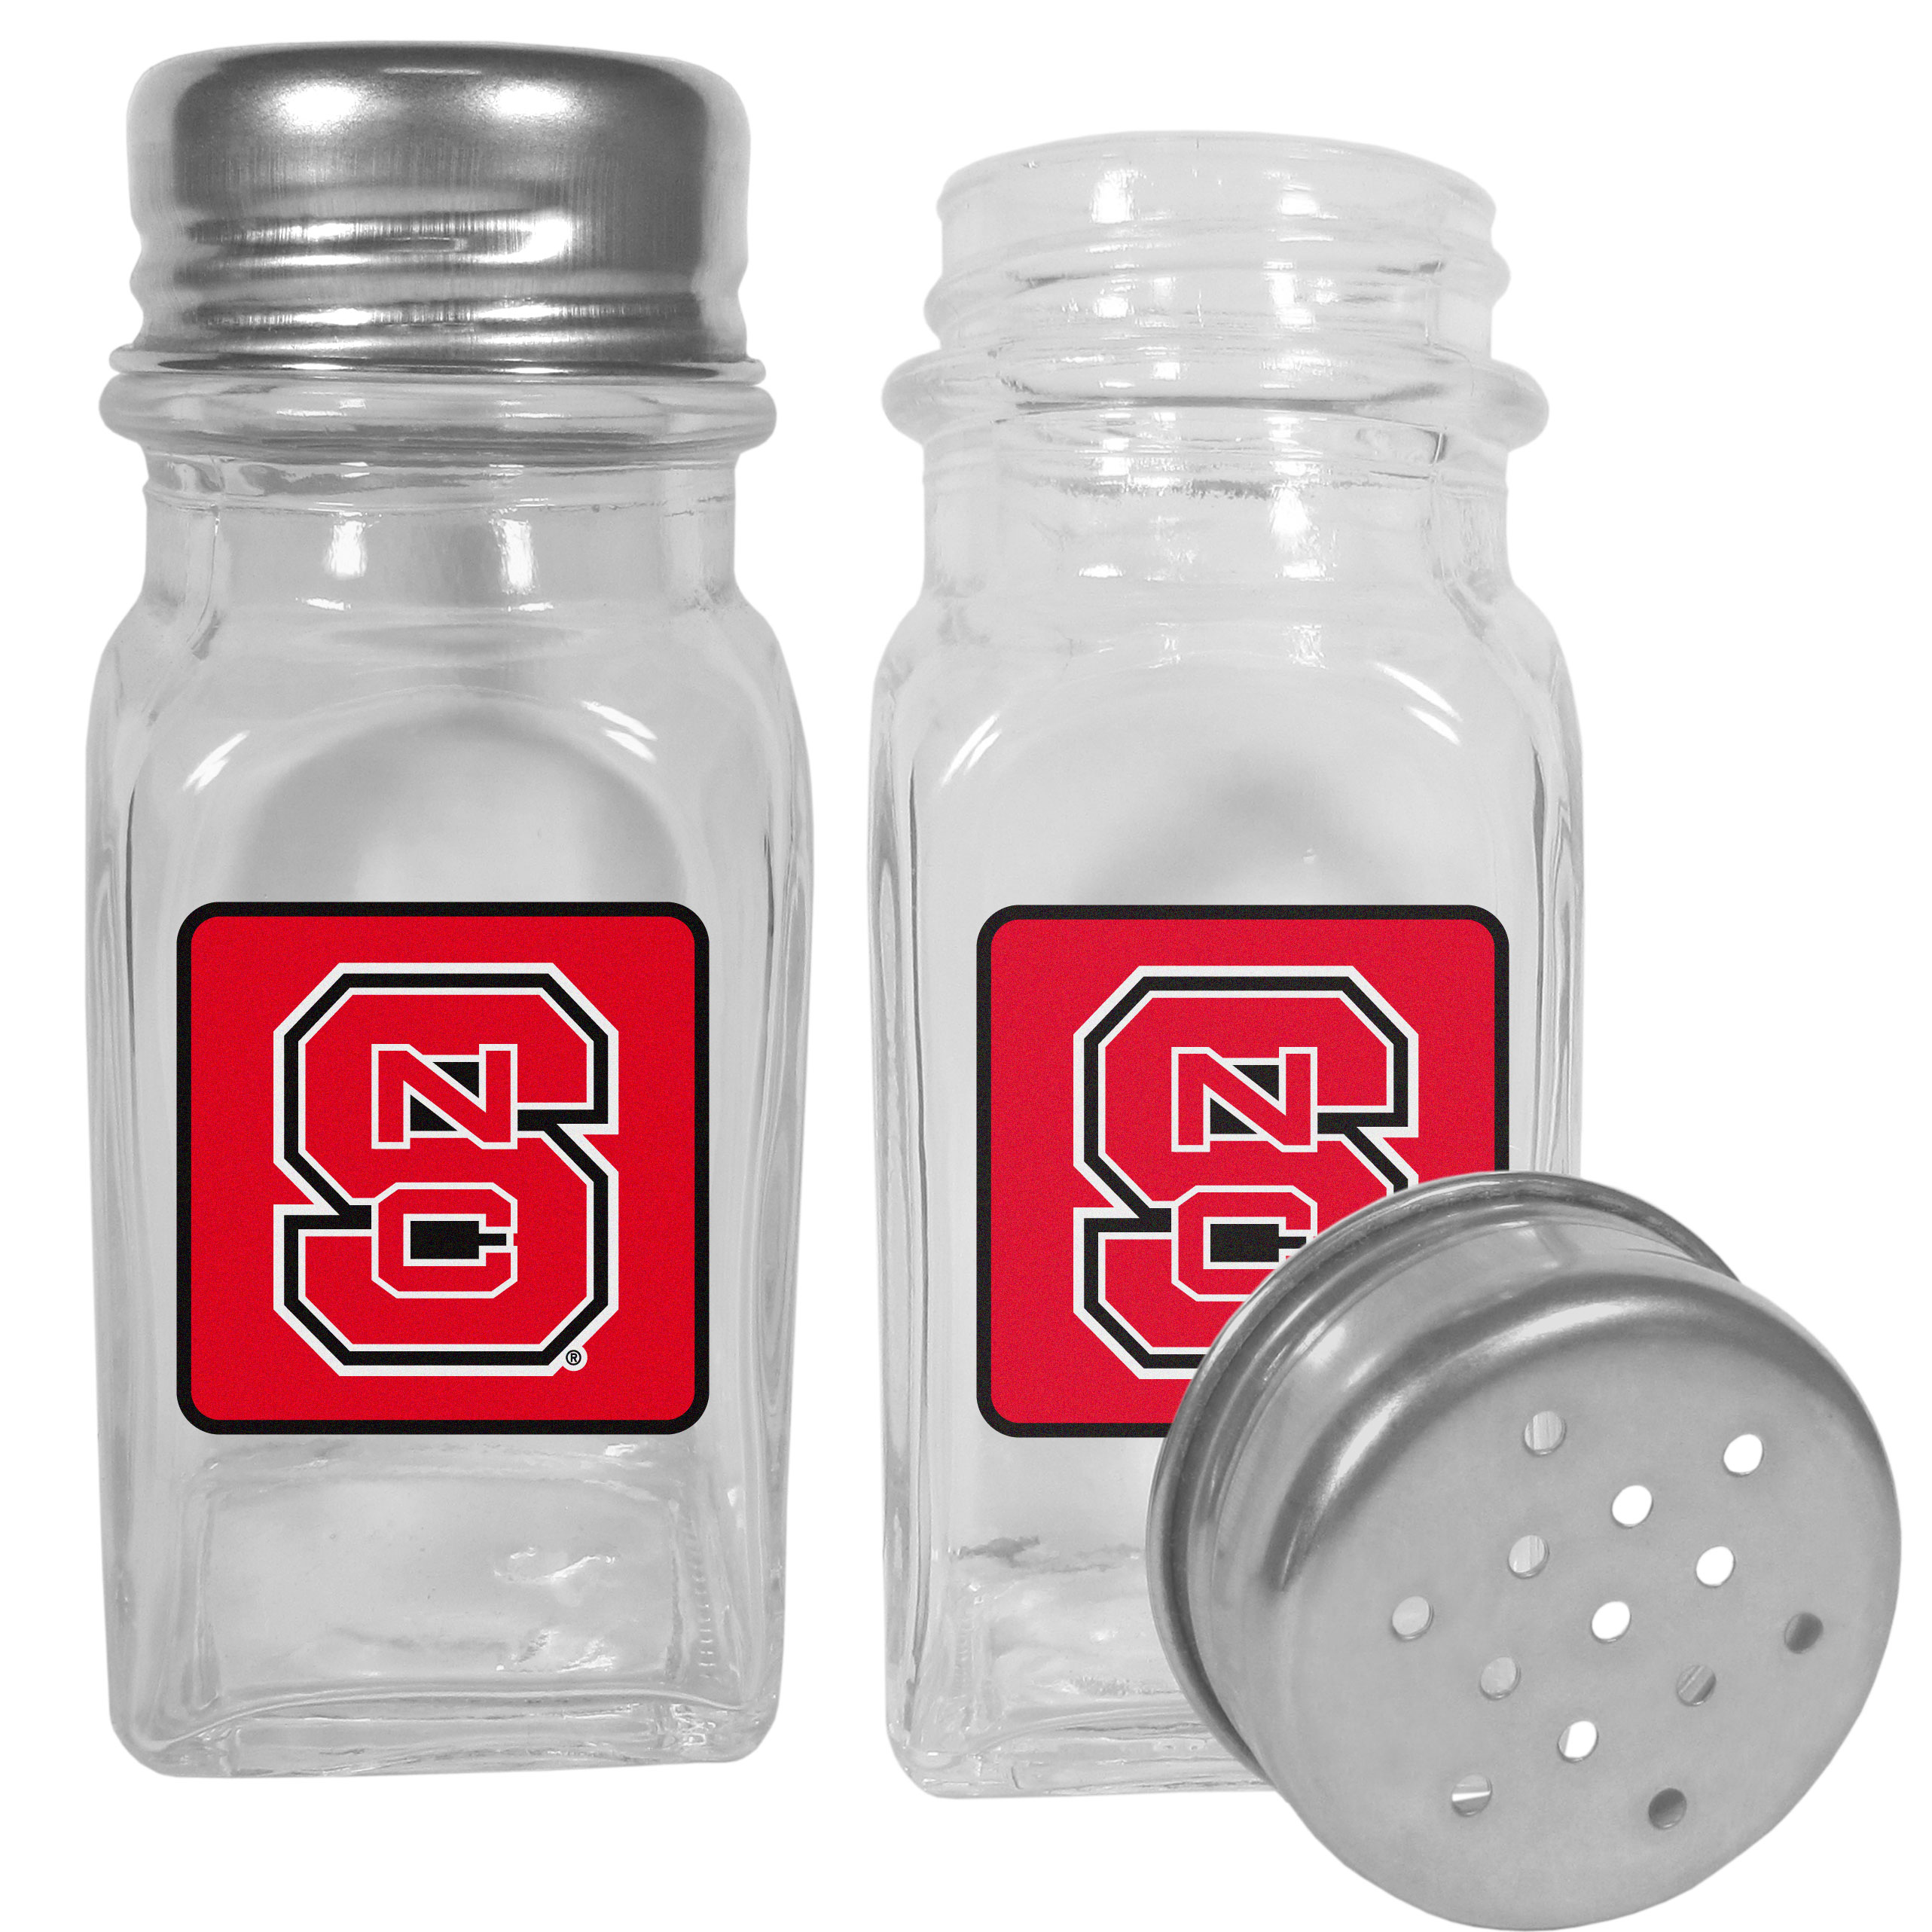 N. Carolina St. Wolfpack Graphics Salt and Pepper Shaker - No tailgate party is complete without your N. Carolina St. Wolfpack salt & pepper shakers featuring bright team logos. The diner replica salt and pepper shakers are glass with screw top lids. These team shakers are a great grill accessory whether you are barbecuing on the patio, picnicing or having a game day party.